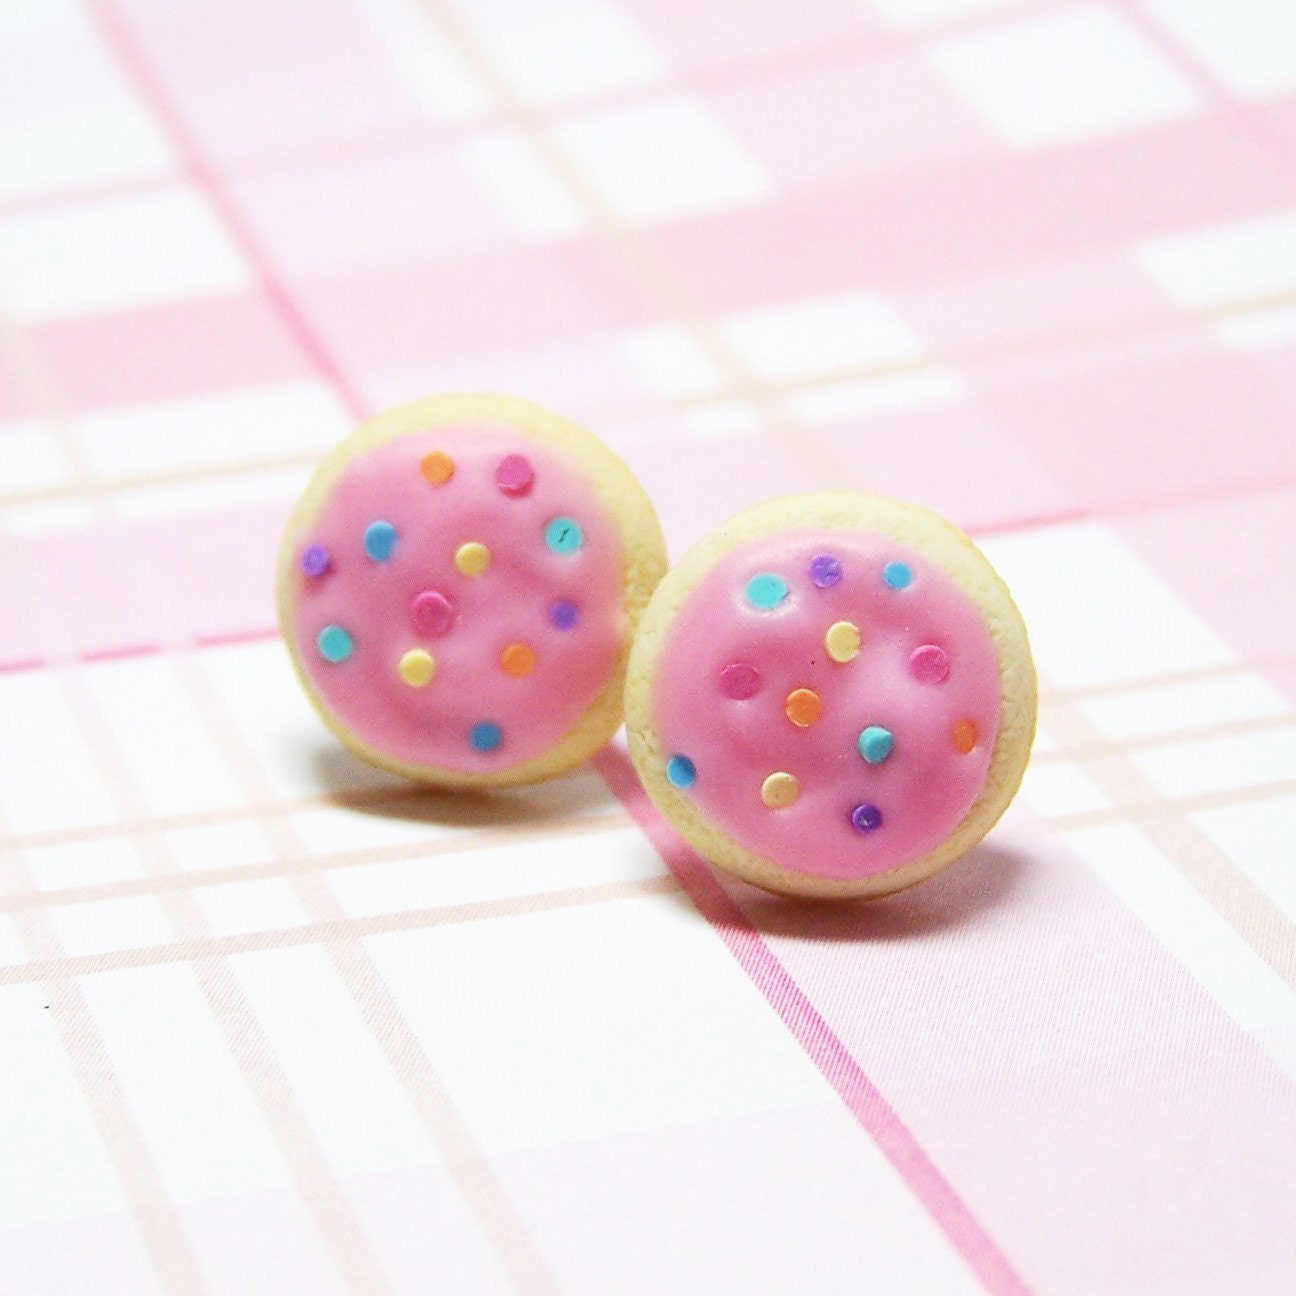 Sugar Cookies With Pink Frosting Stud Earrings Polymer Clay Food ...